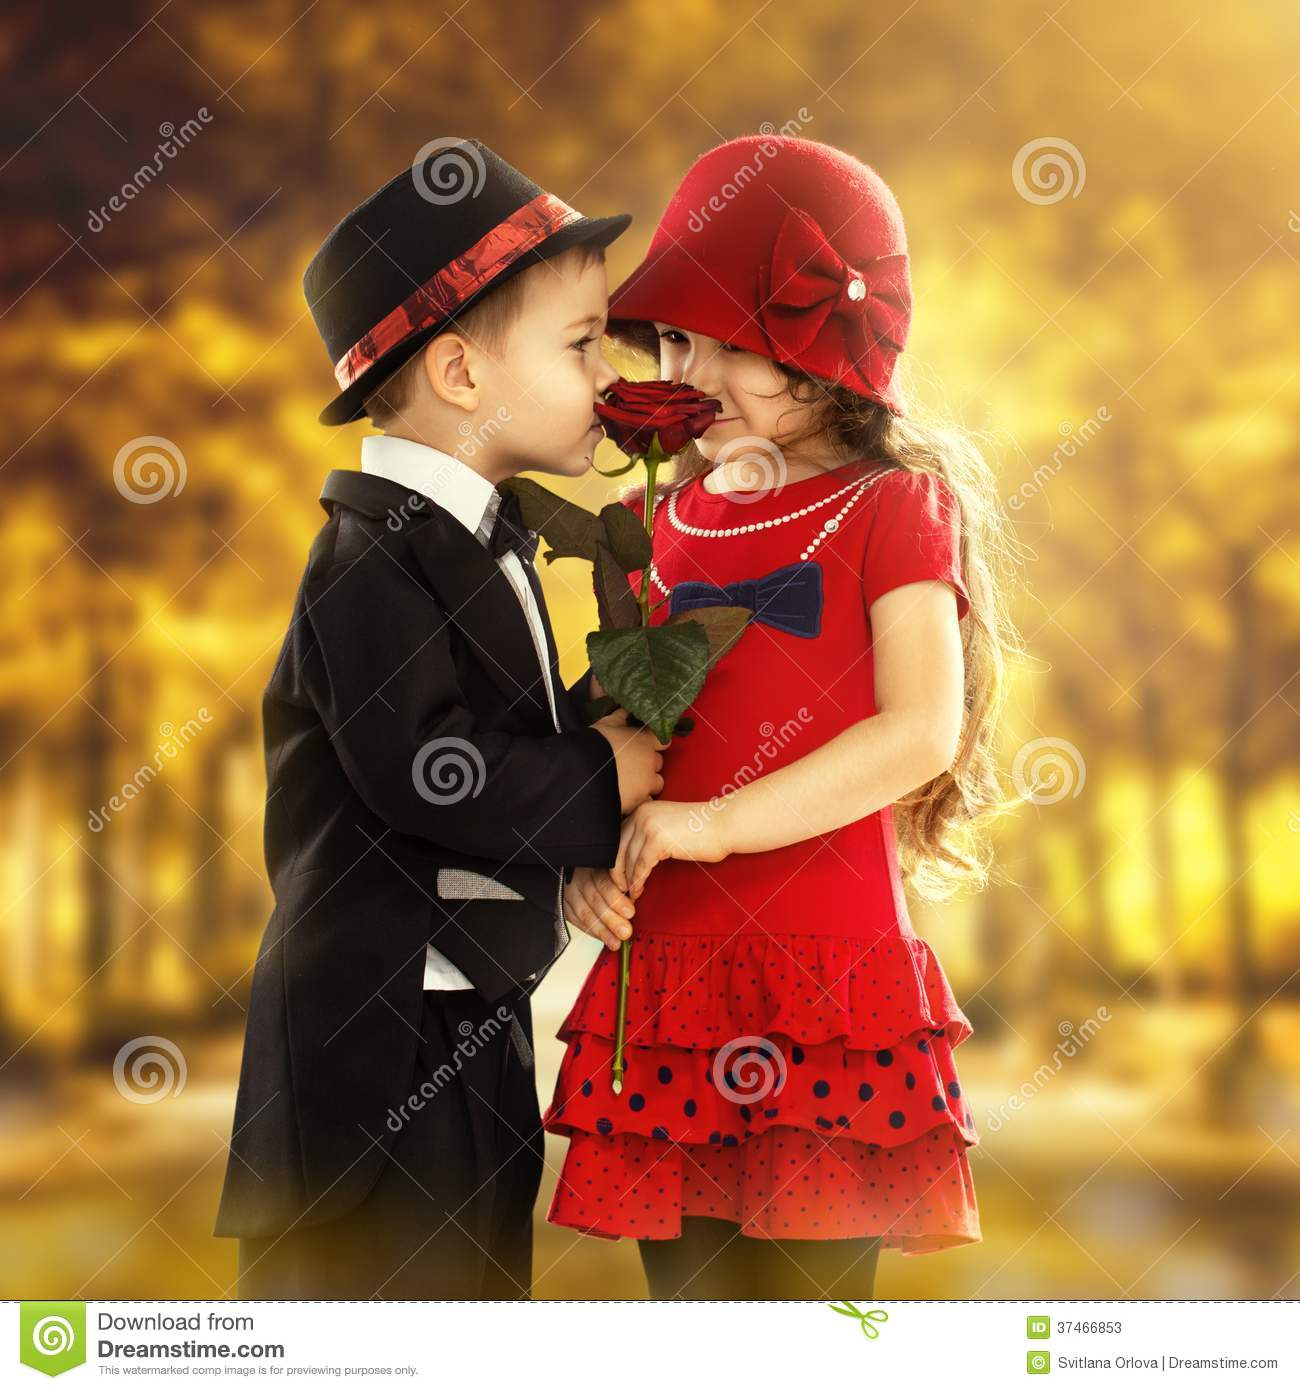 Cute Couples Holding Hands Wallpapers Lovely Little Boy Giving A Rose To Girl Stock Image